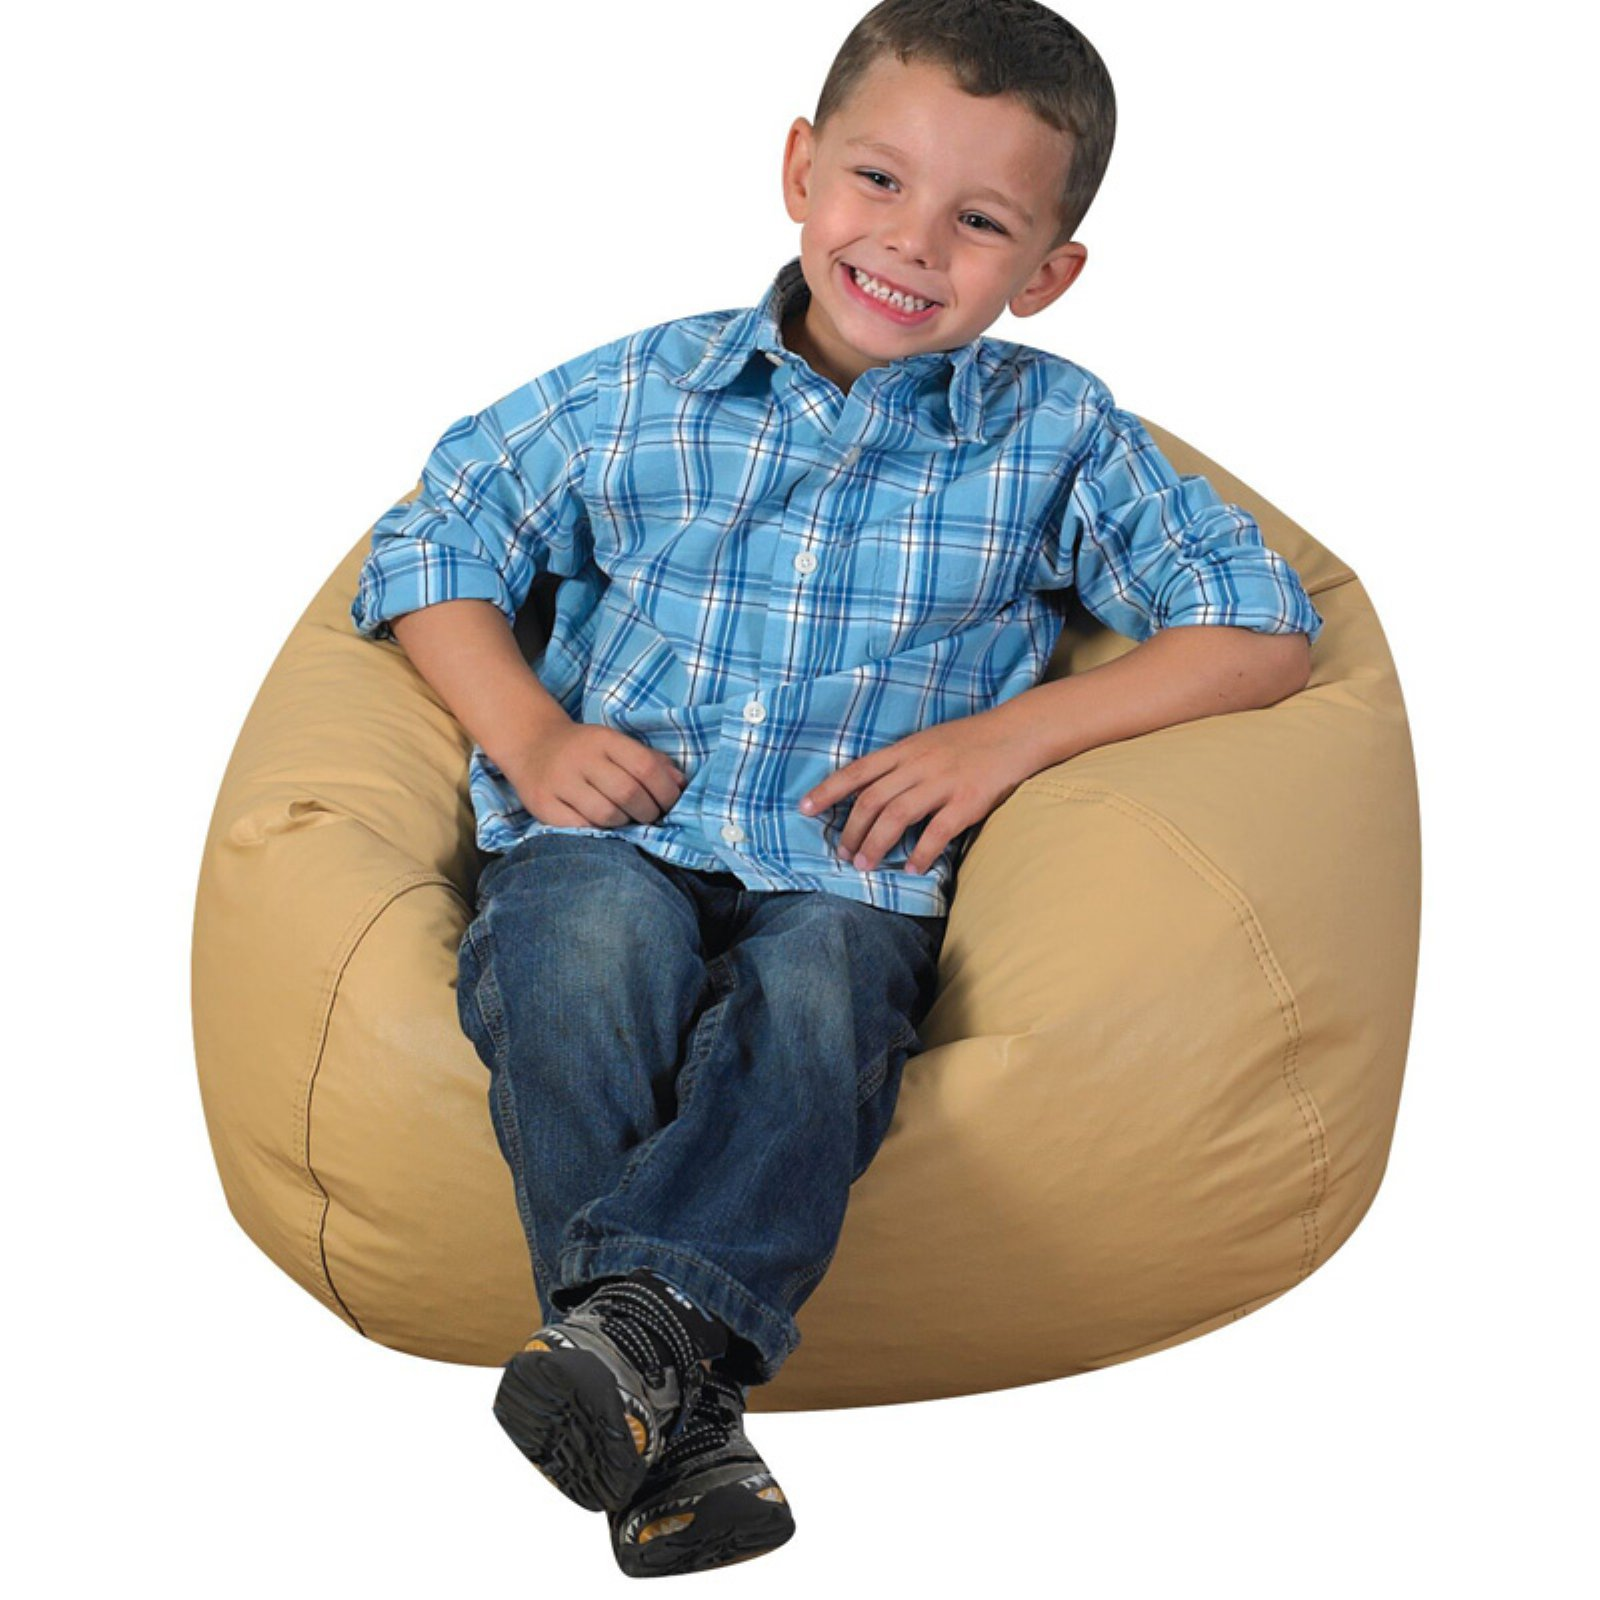 Magnificent Childrens Factory Round Bean Bag Almond In 2019 Products Alphanode Cool Chair Designs And Ideas Alphanodeonline